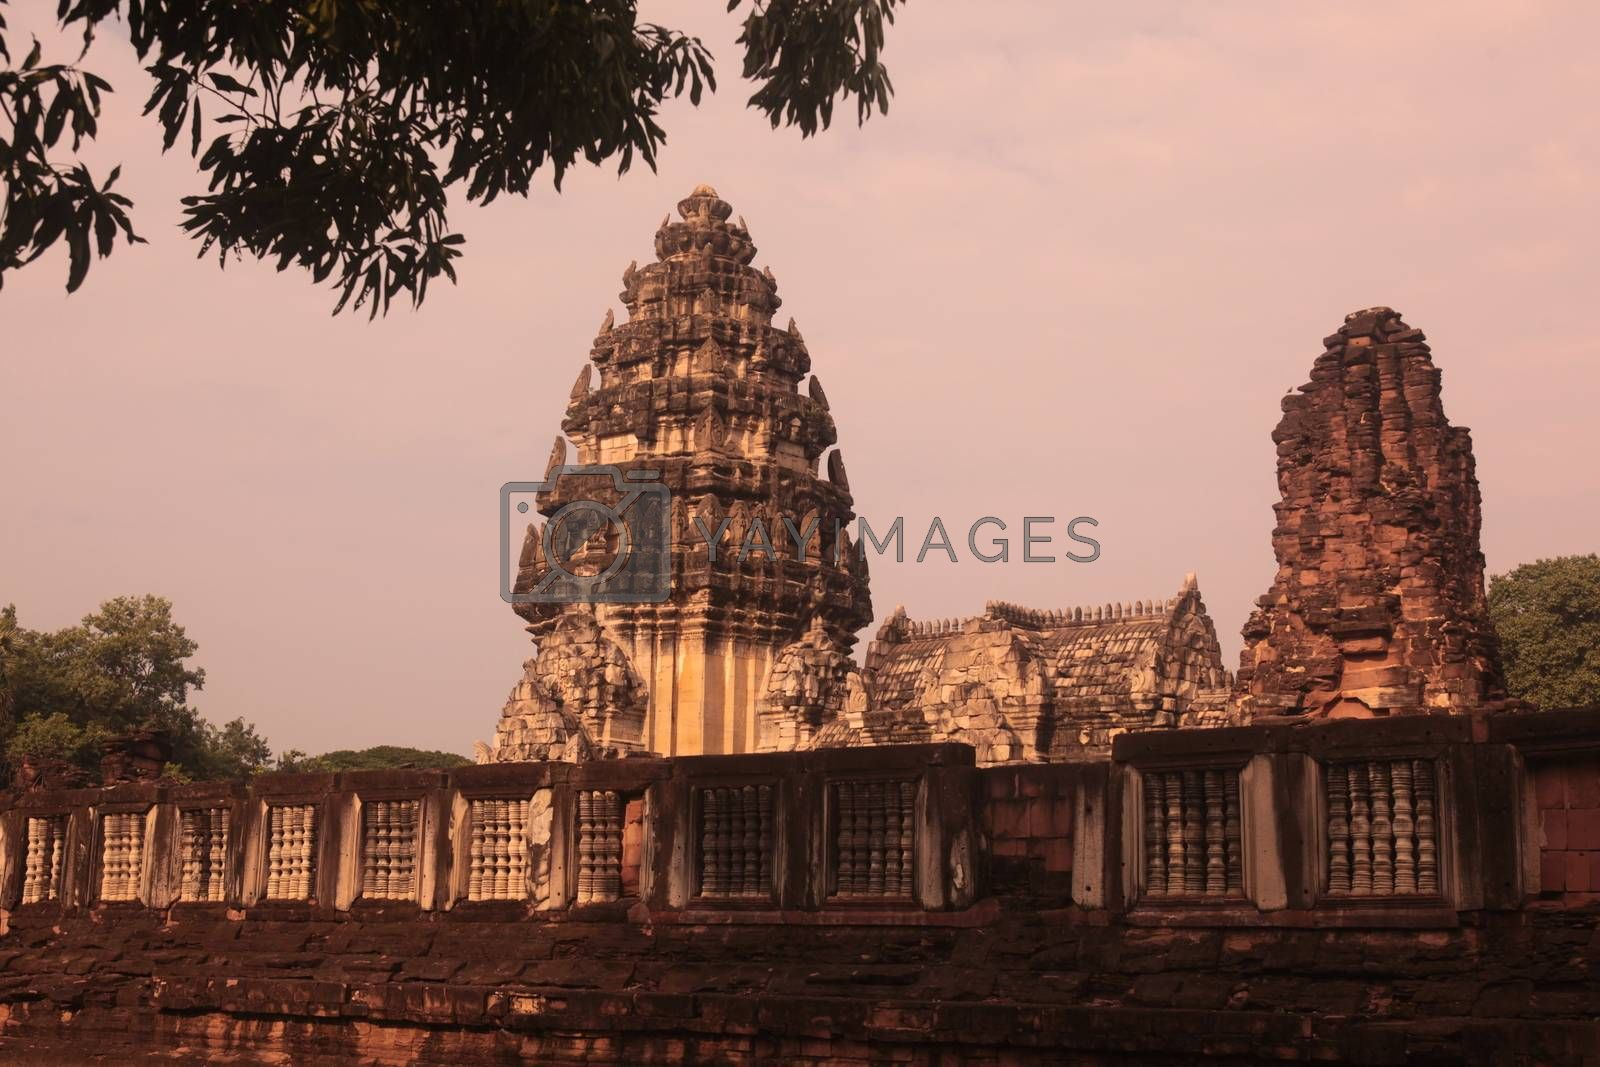 ASIA THAILAND ISAN KHORAT PHIMAI KHMER TEMPLE by urf